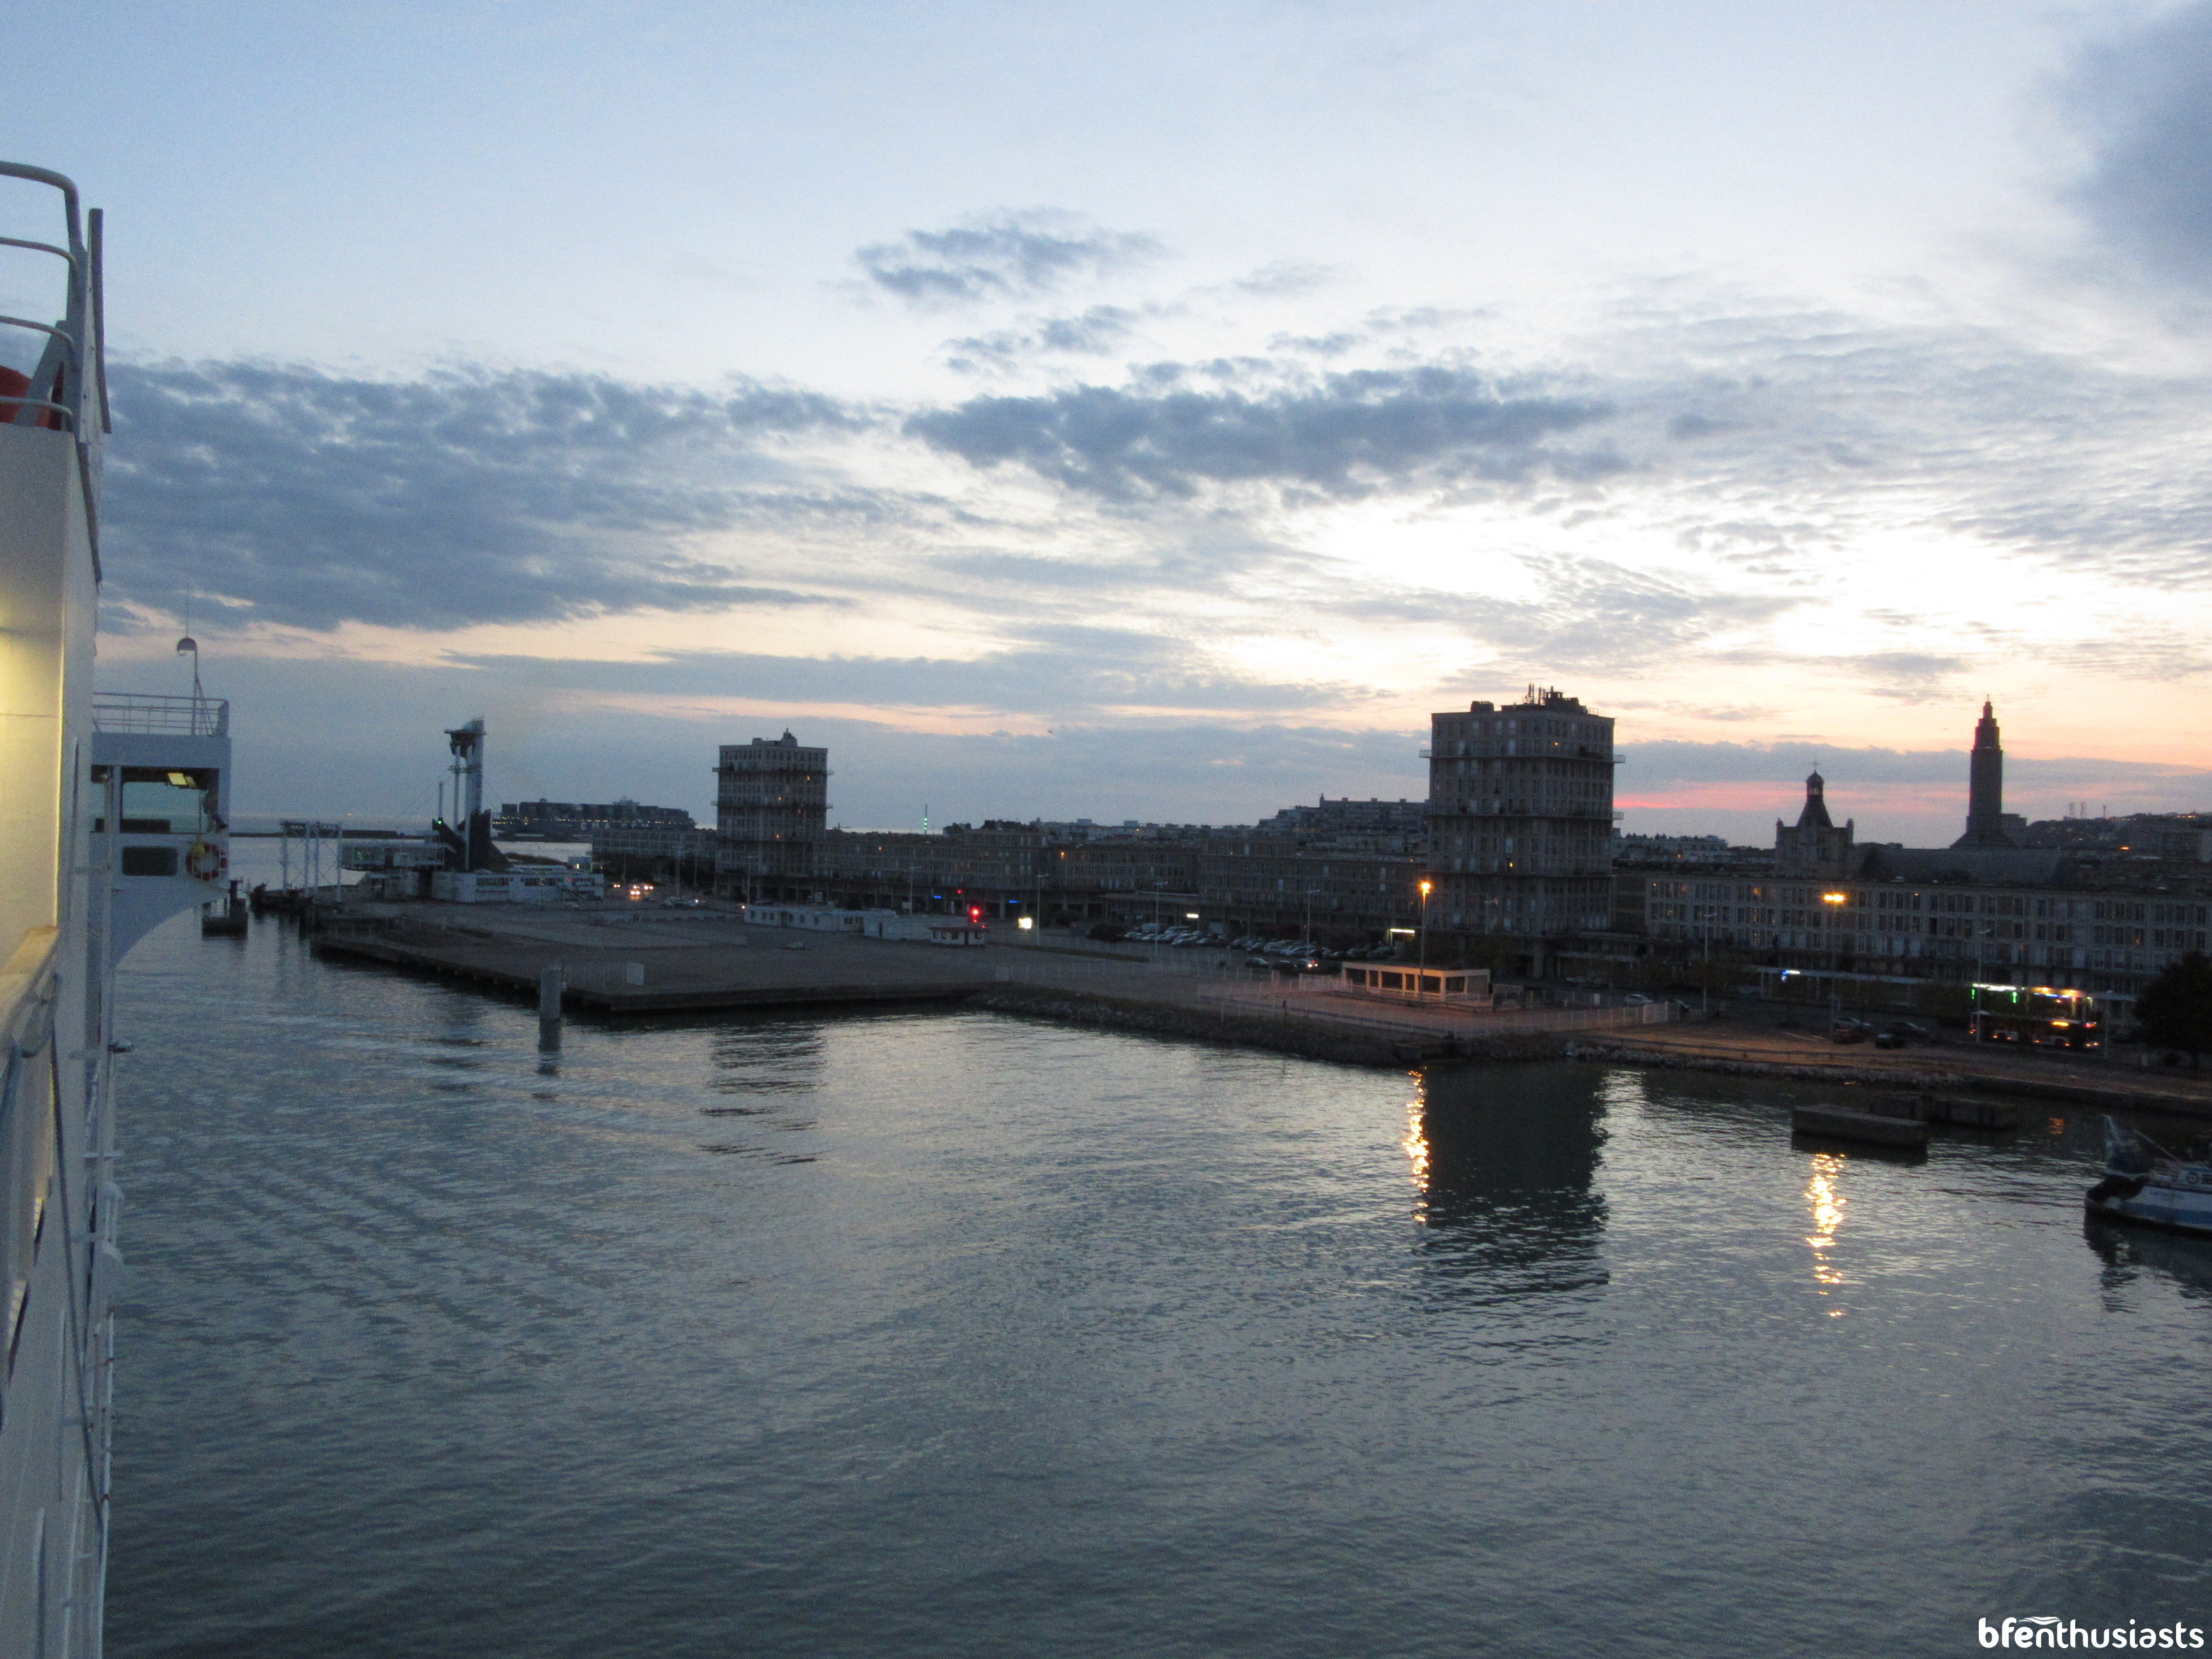 Le Havre at sunset